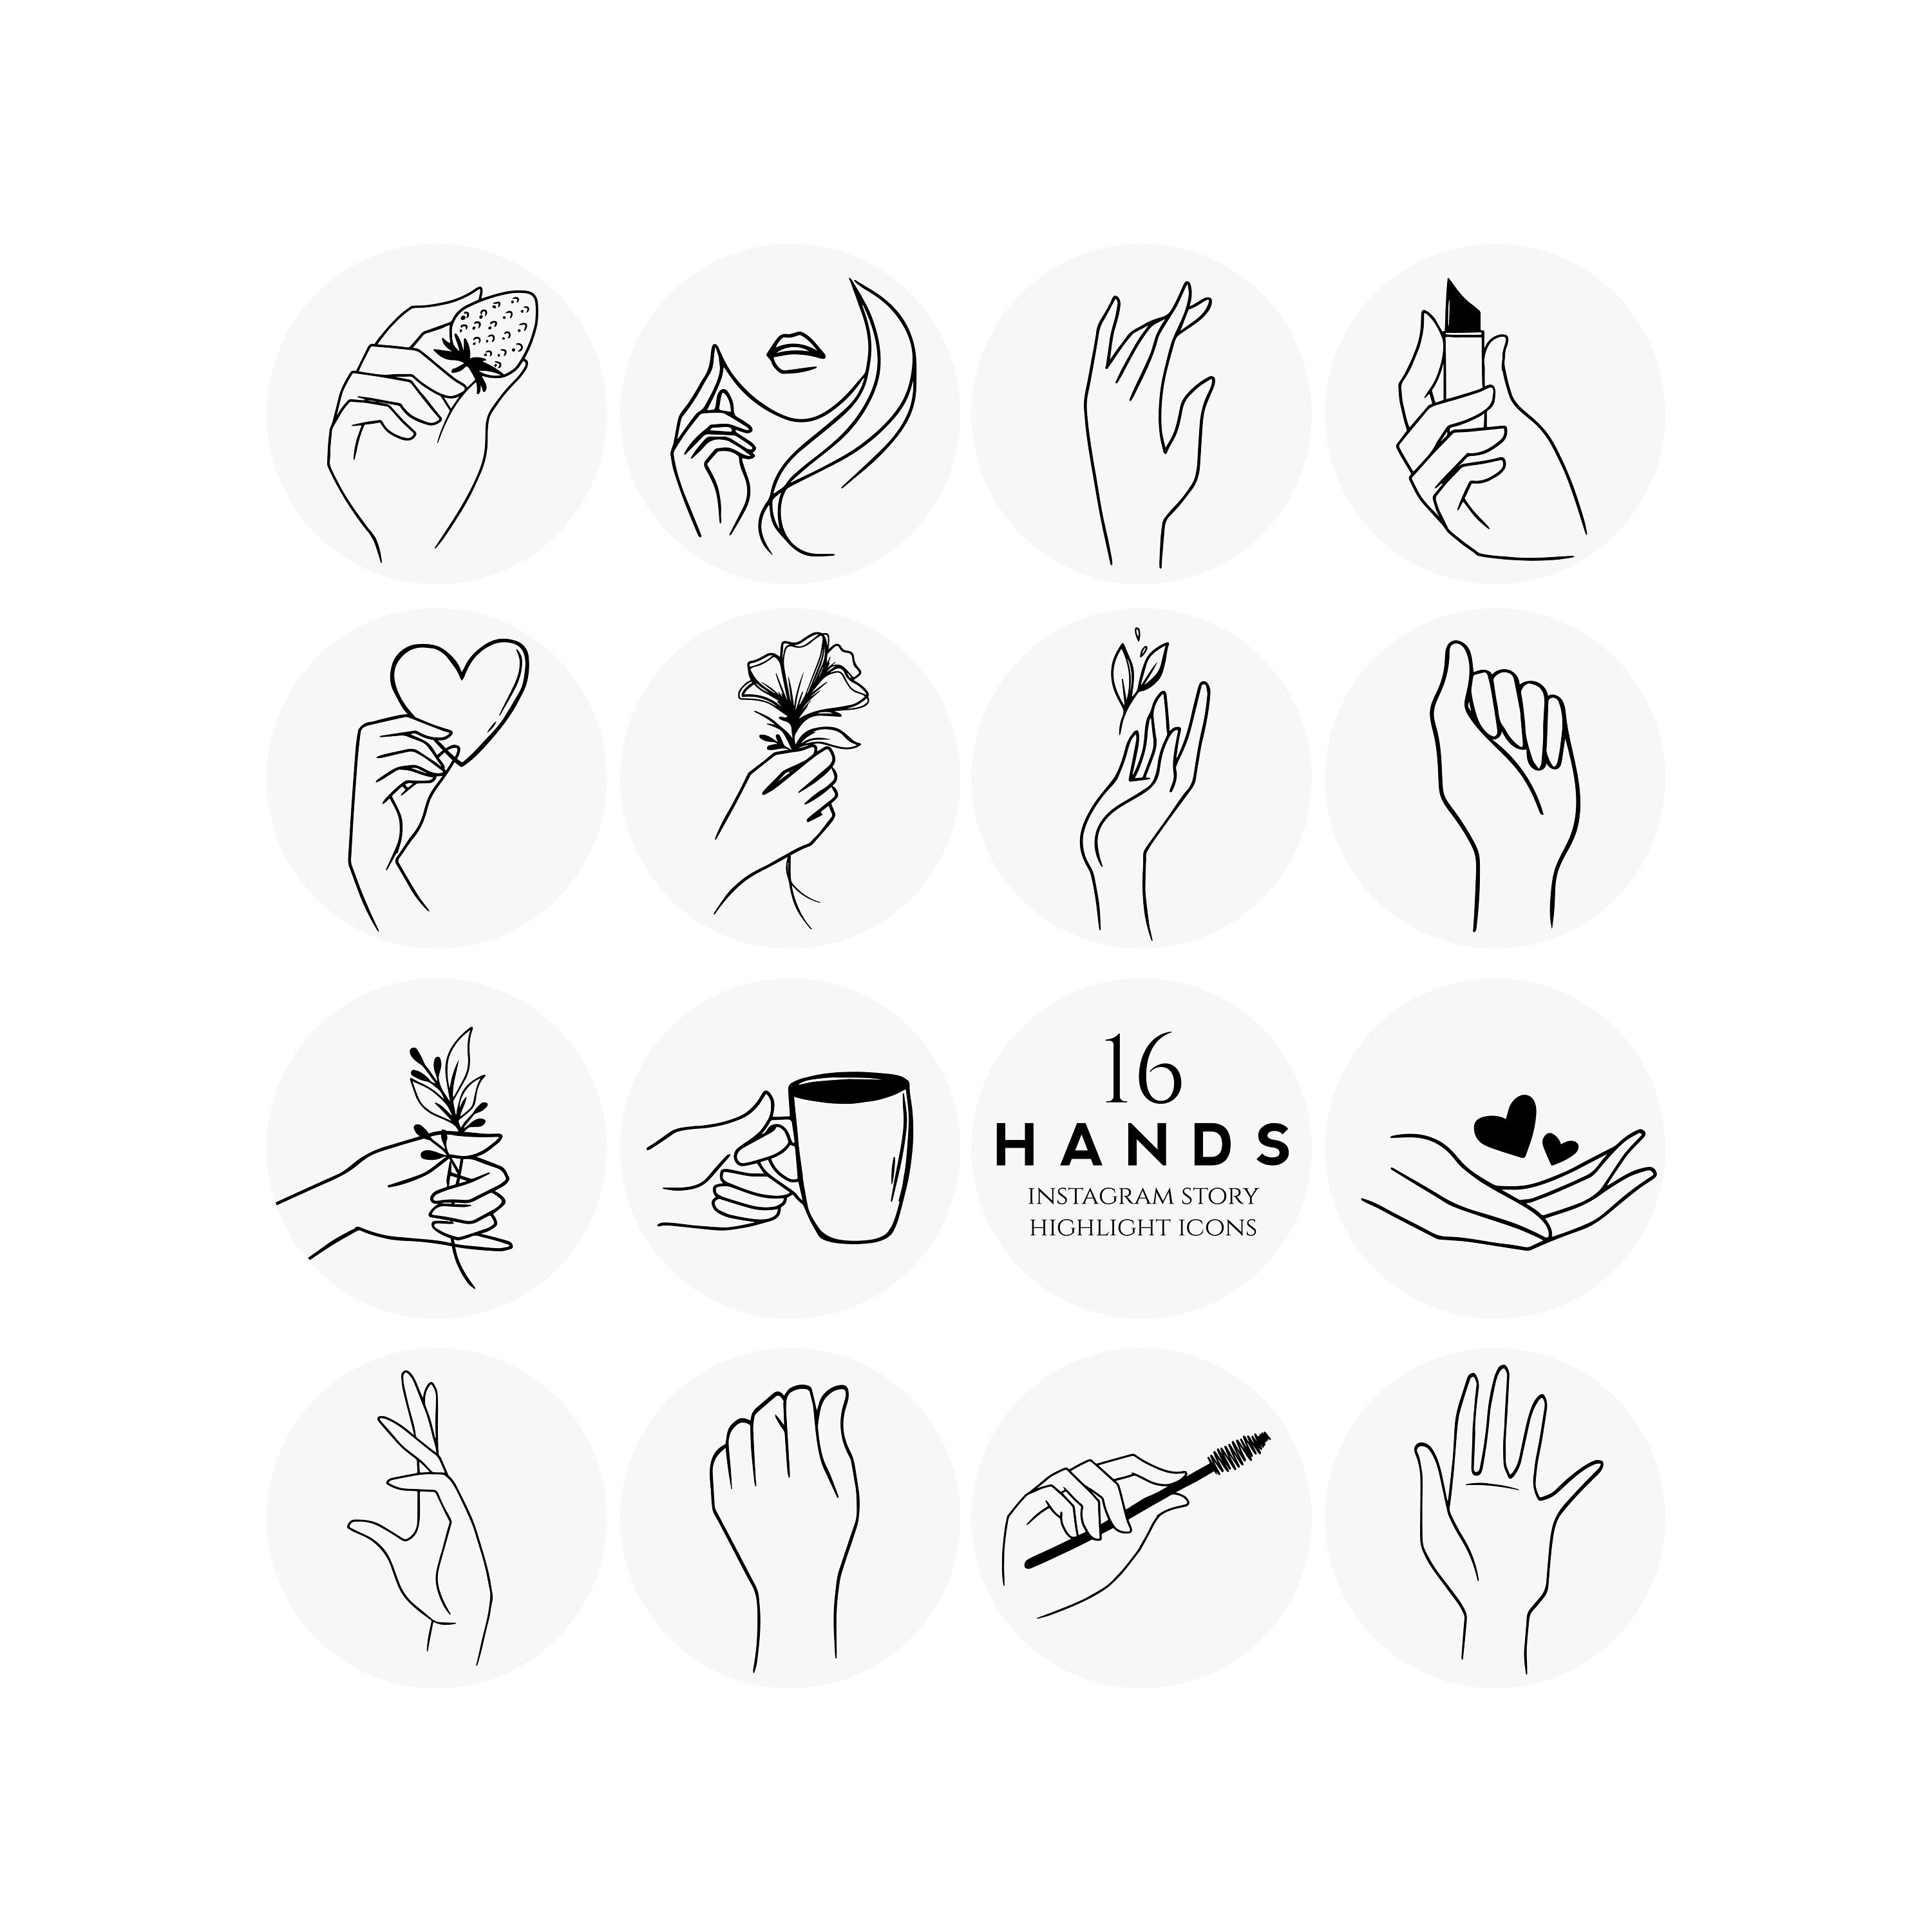 Hands Instagram Story Highlight Icons sketch simple modern